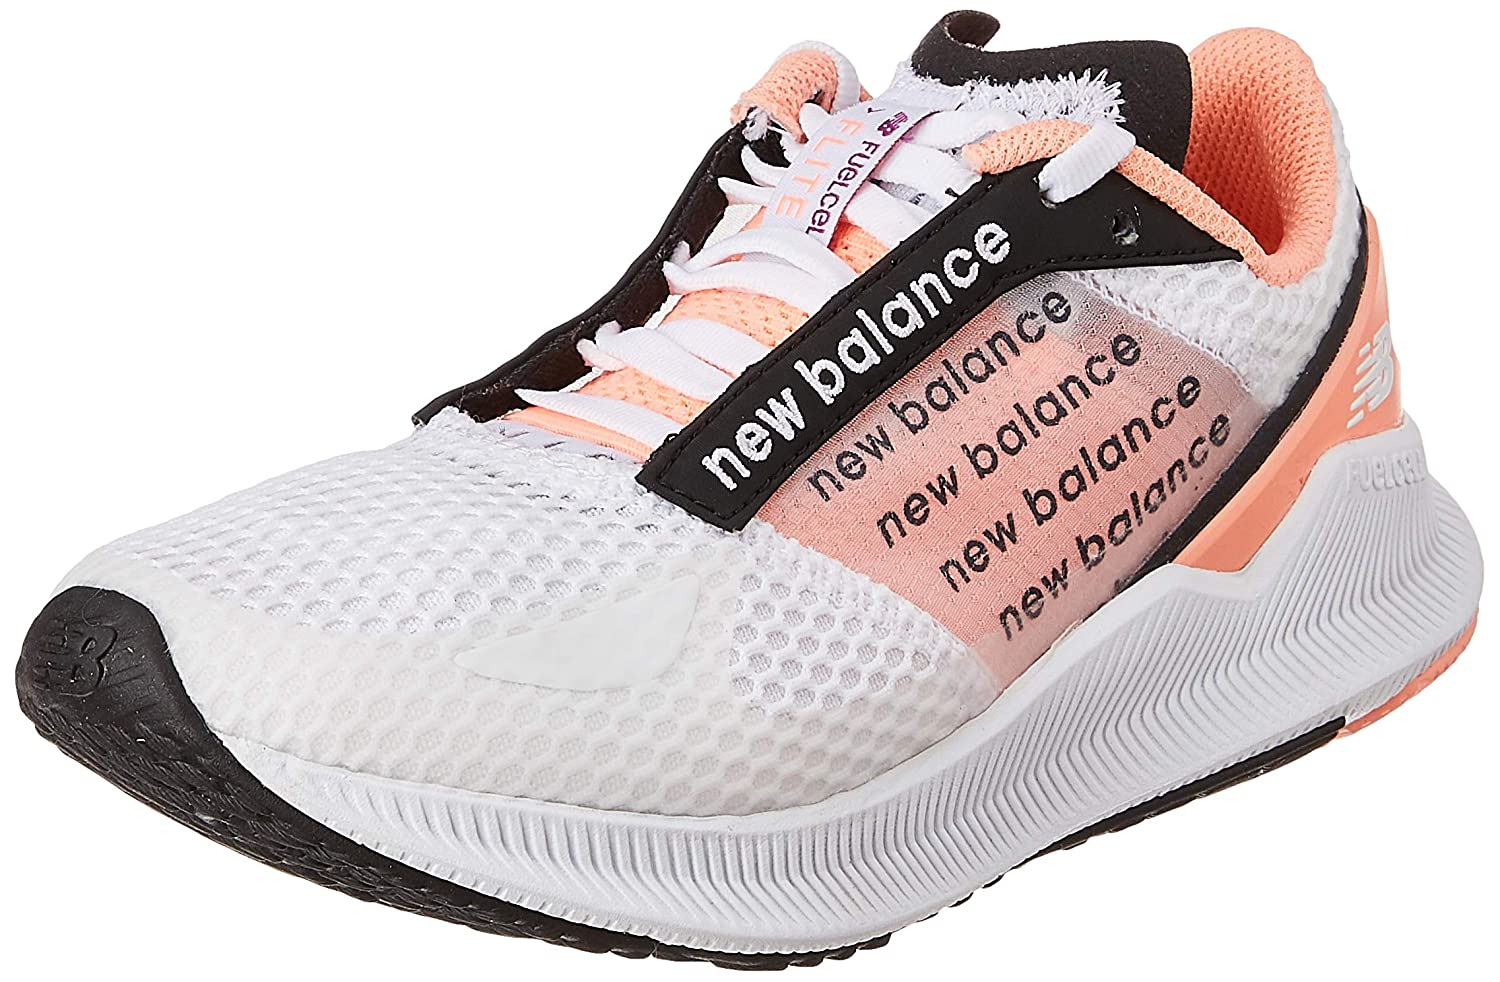 FuelCell Flite White/Pink Running Shoe